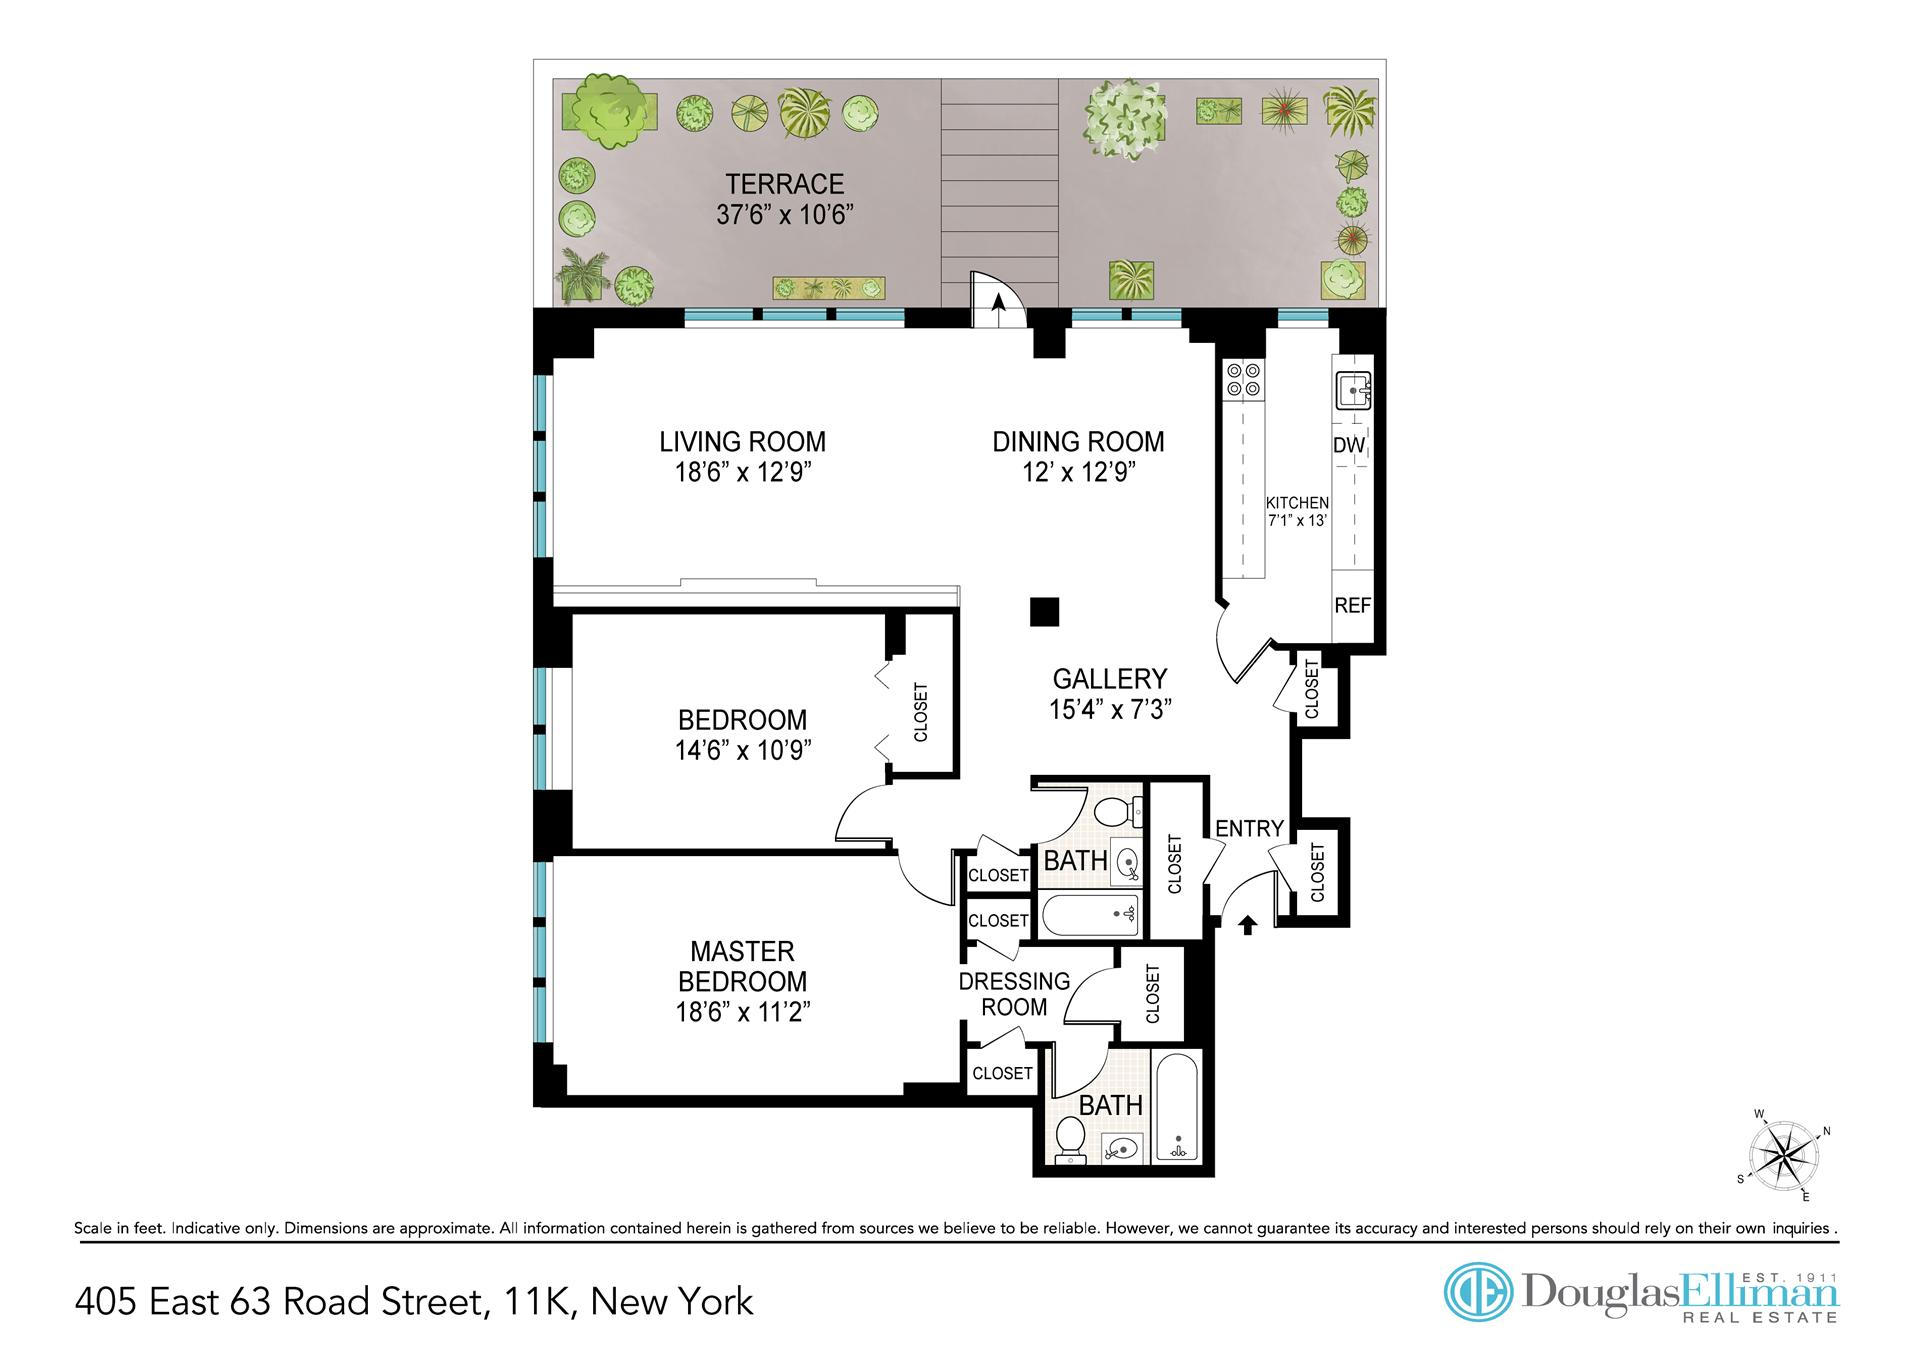 Floor plan of 405 East 63rd St, 11K - Upper East Side, New York